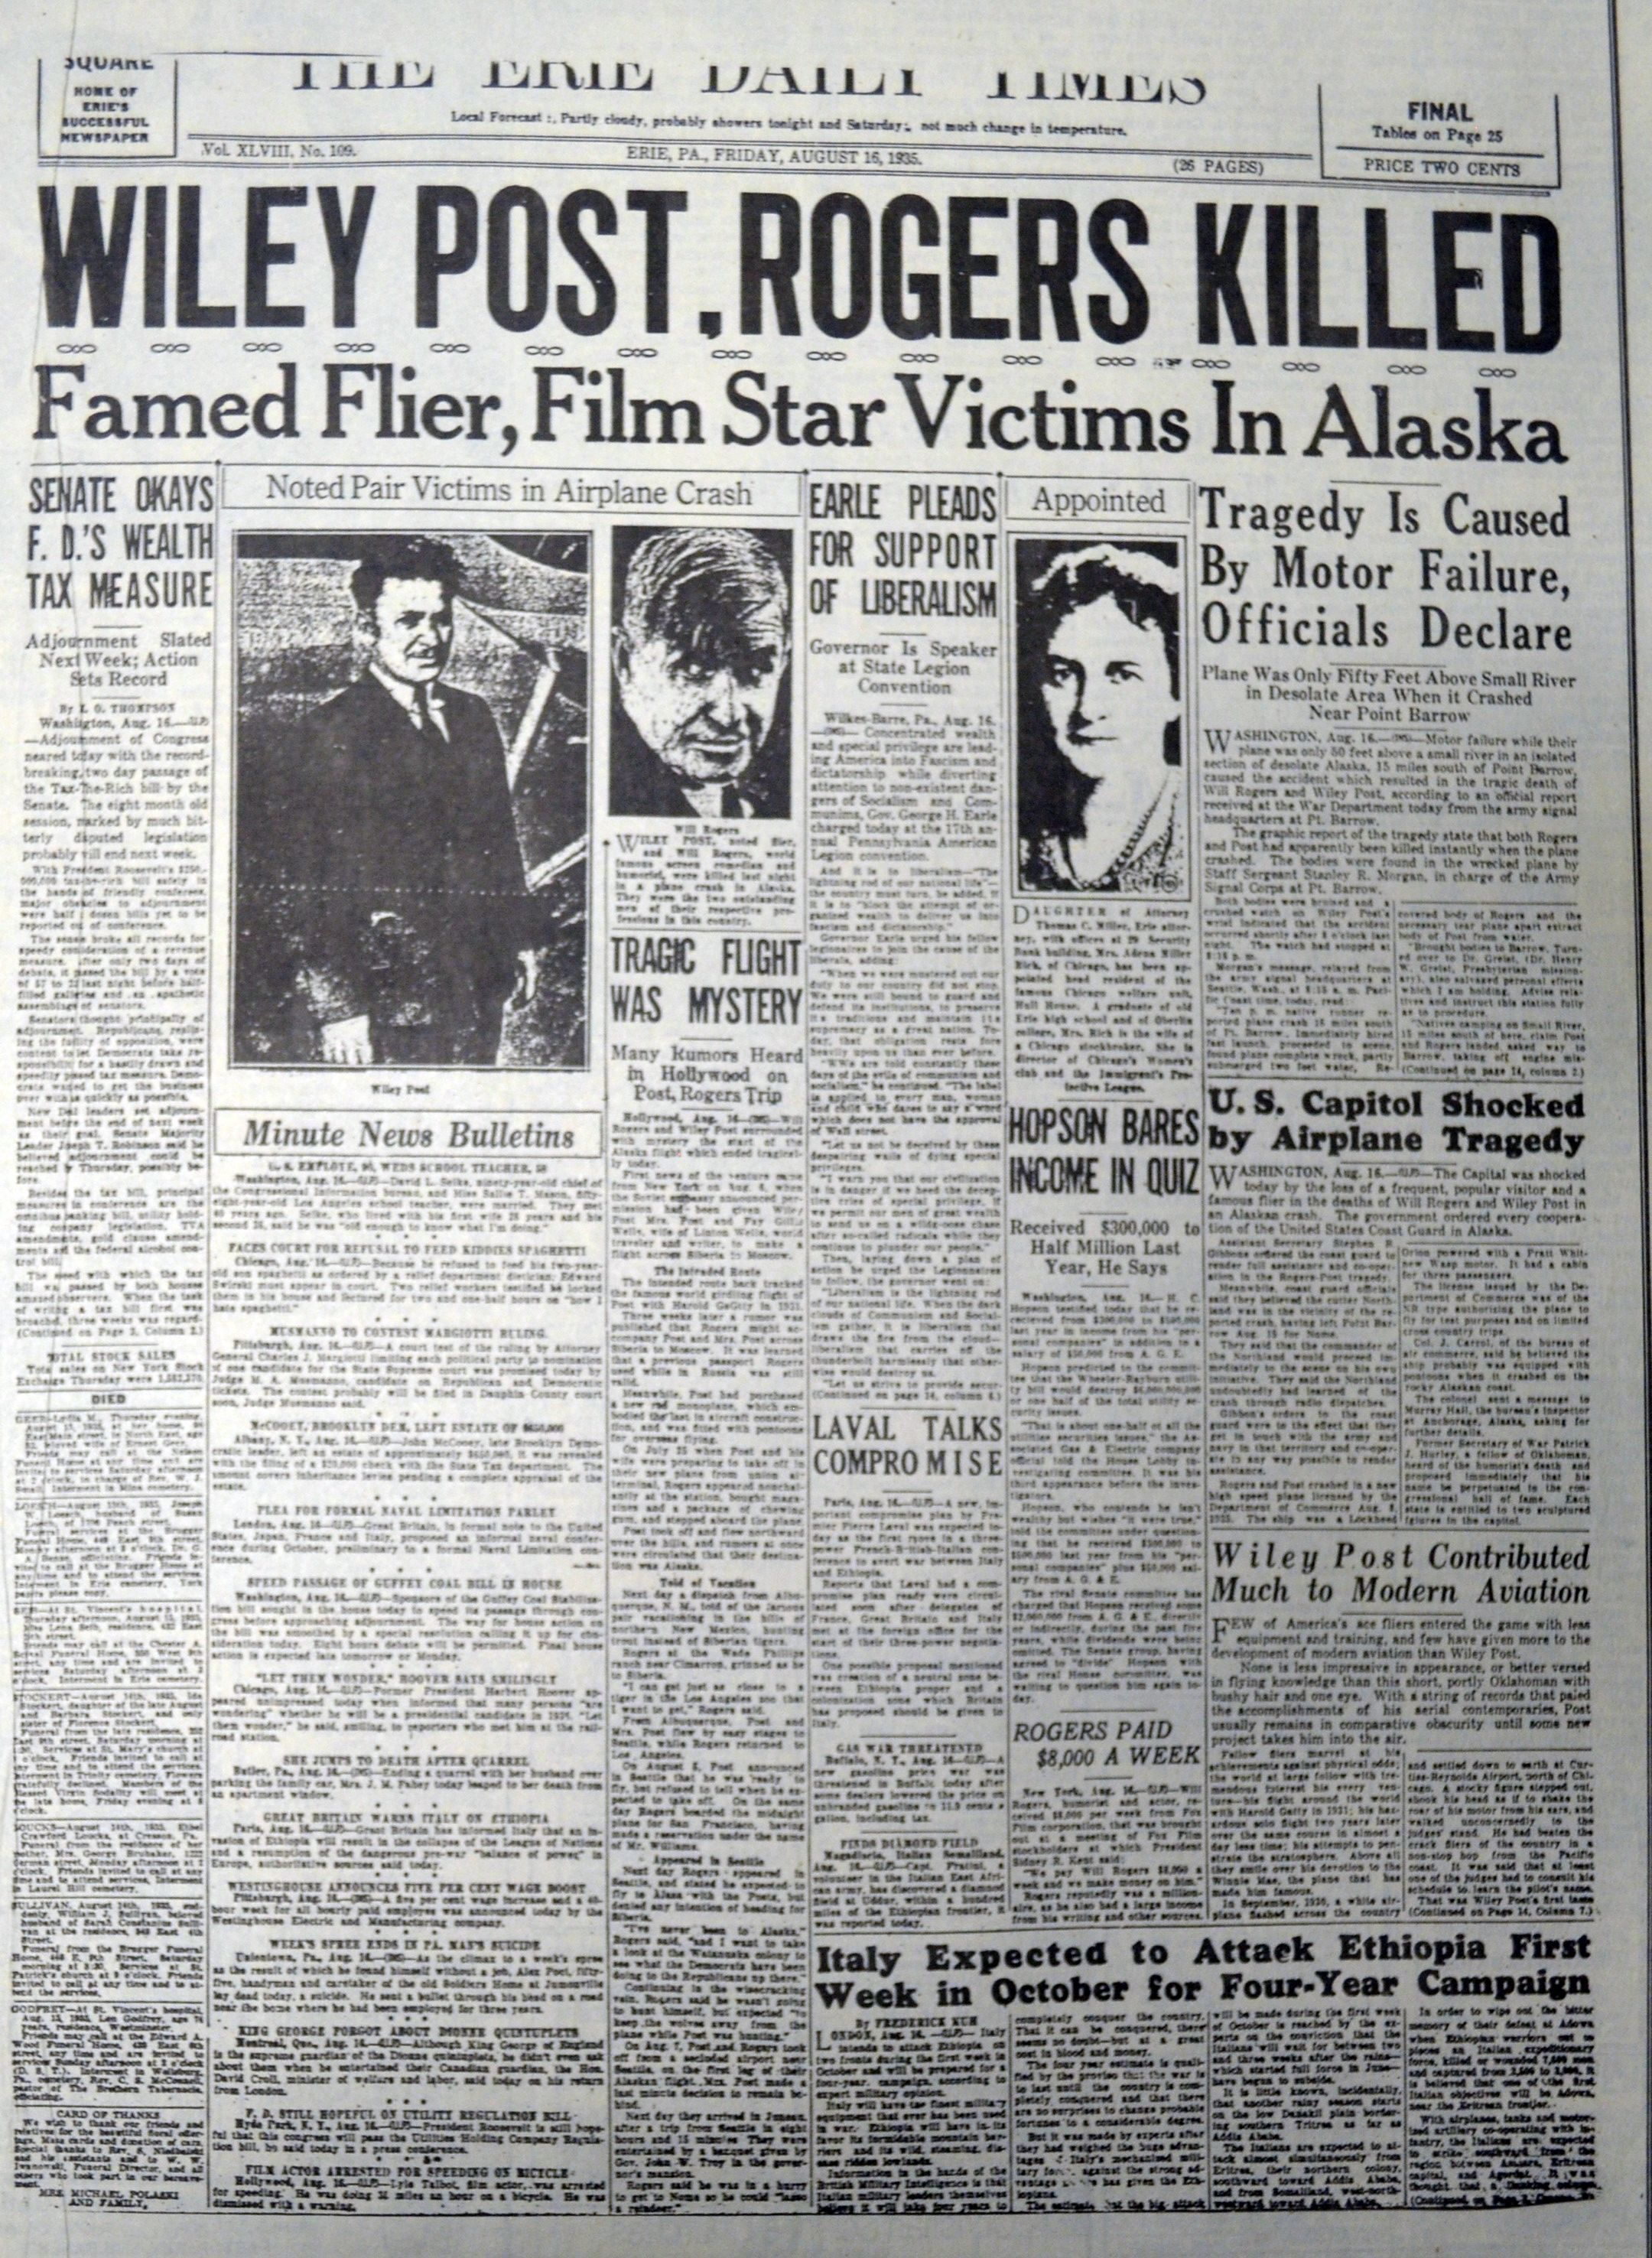 This August 16, 1935 newspaper contains coverage of the death of Wiley  Post, a